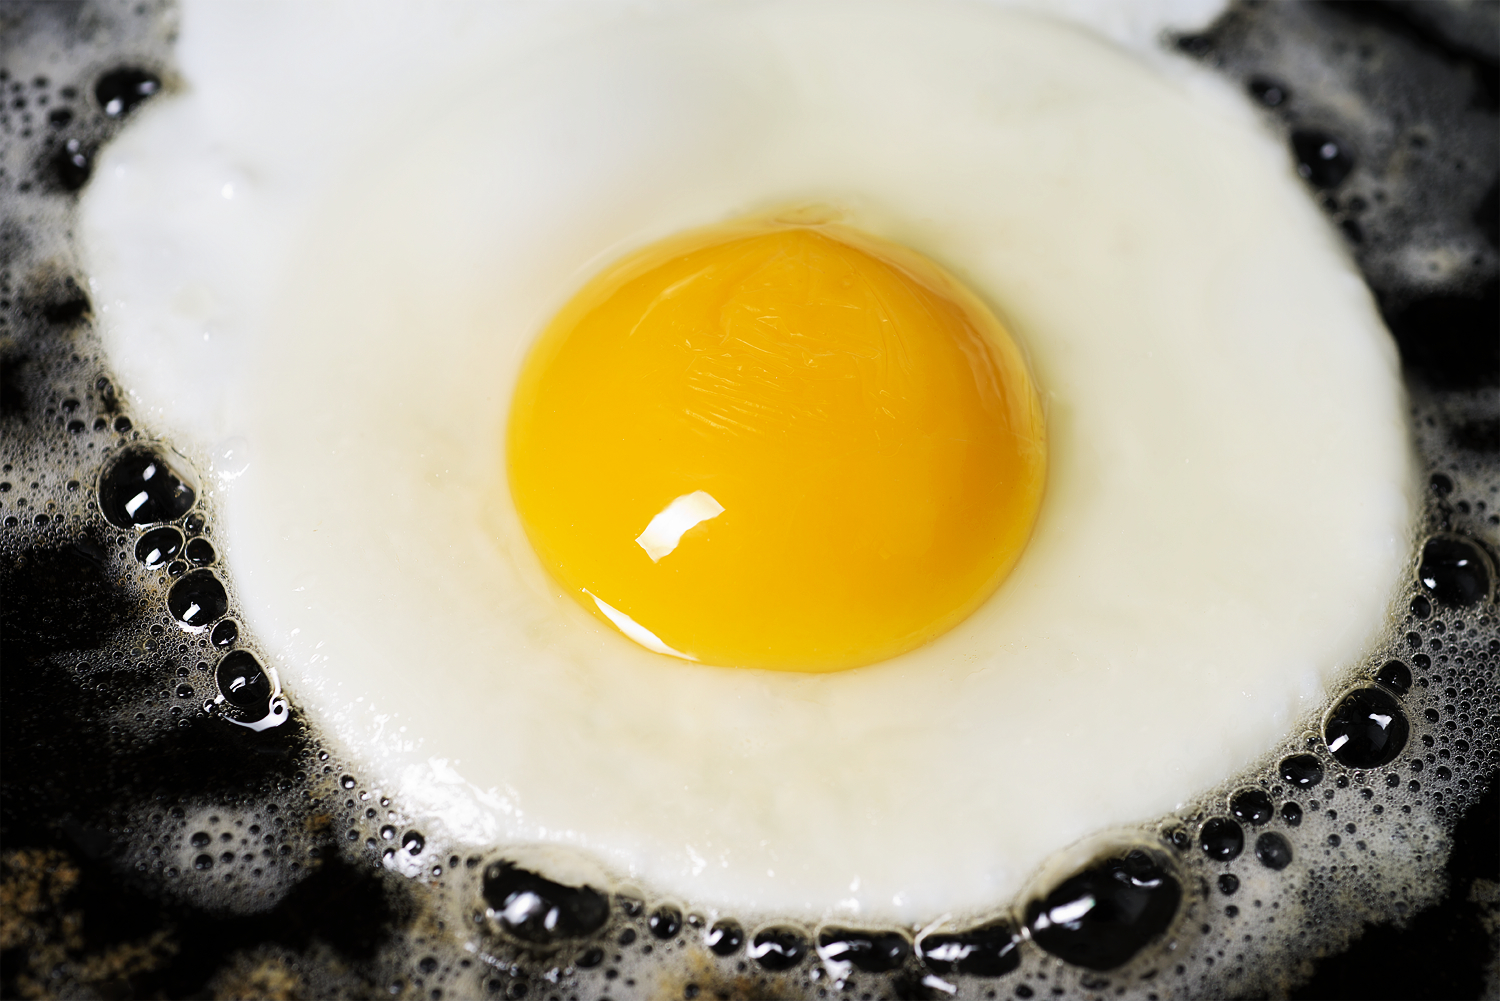 How to fry eggs